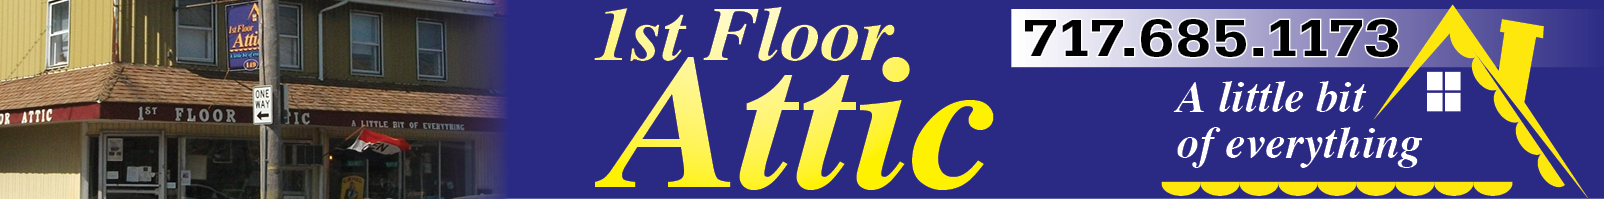 1st Floor Attic